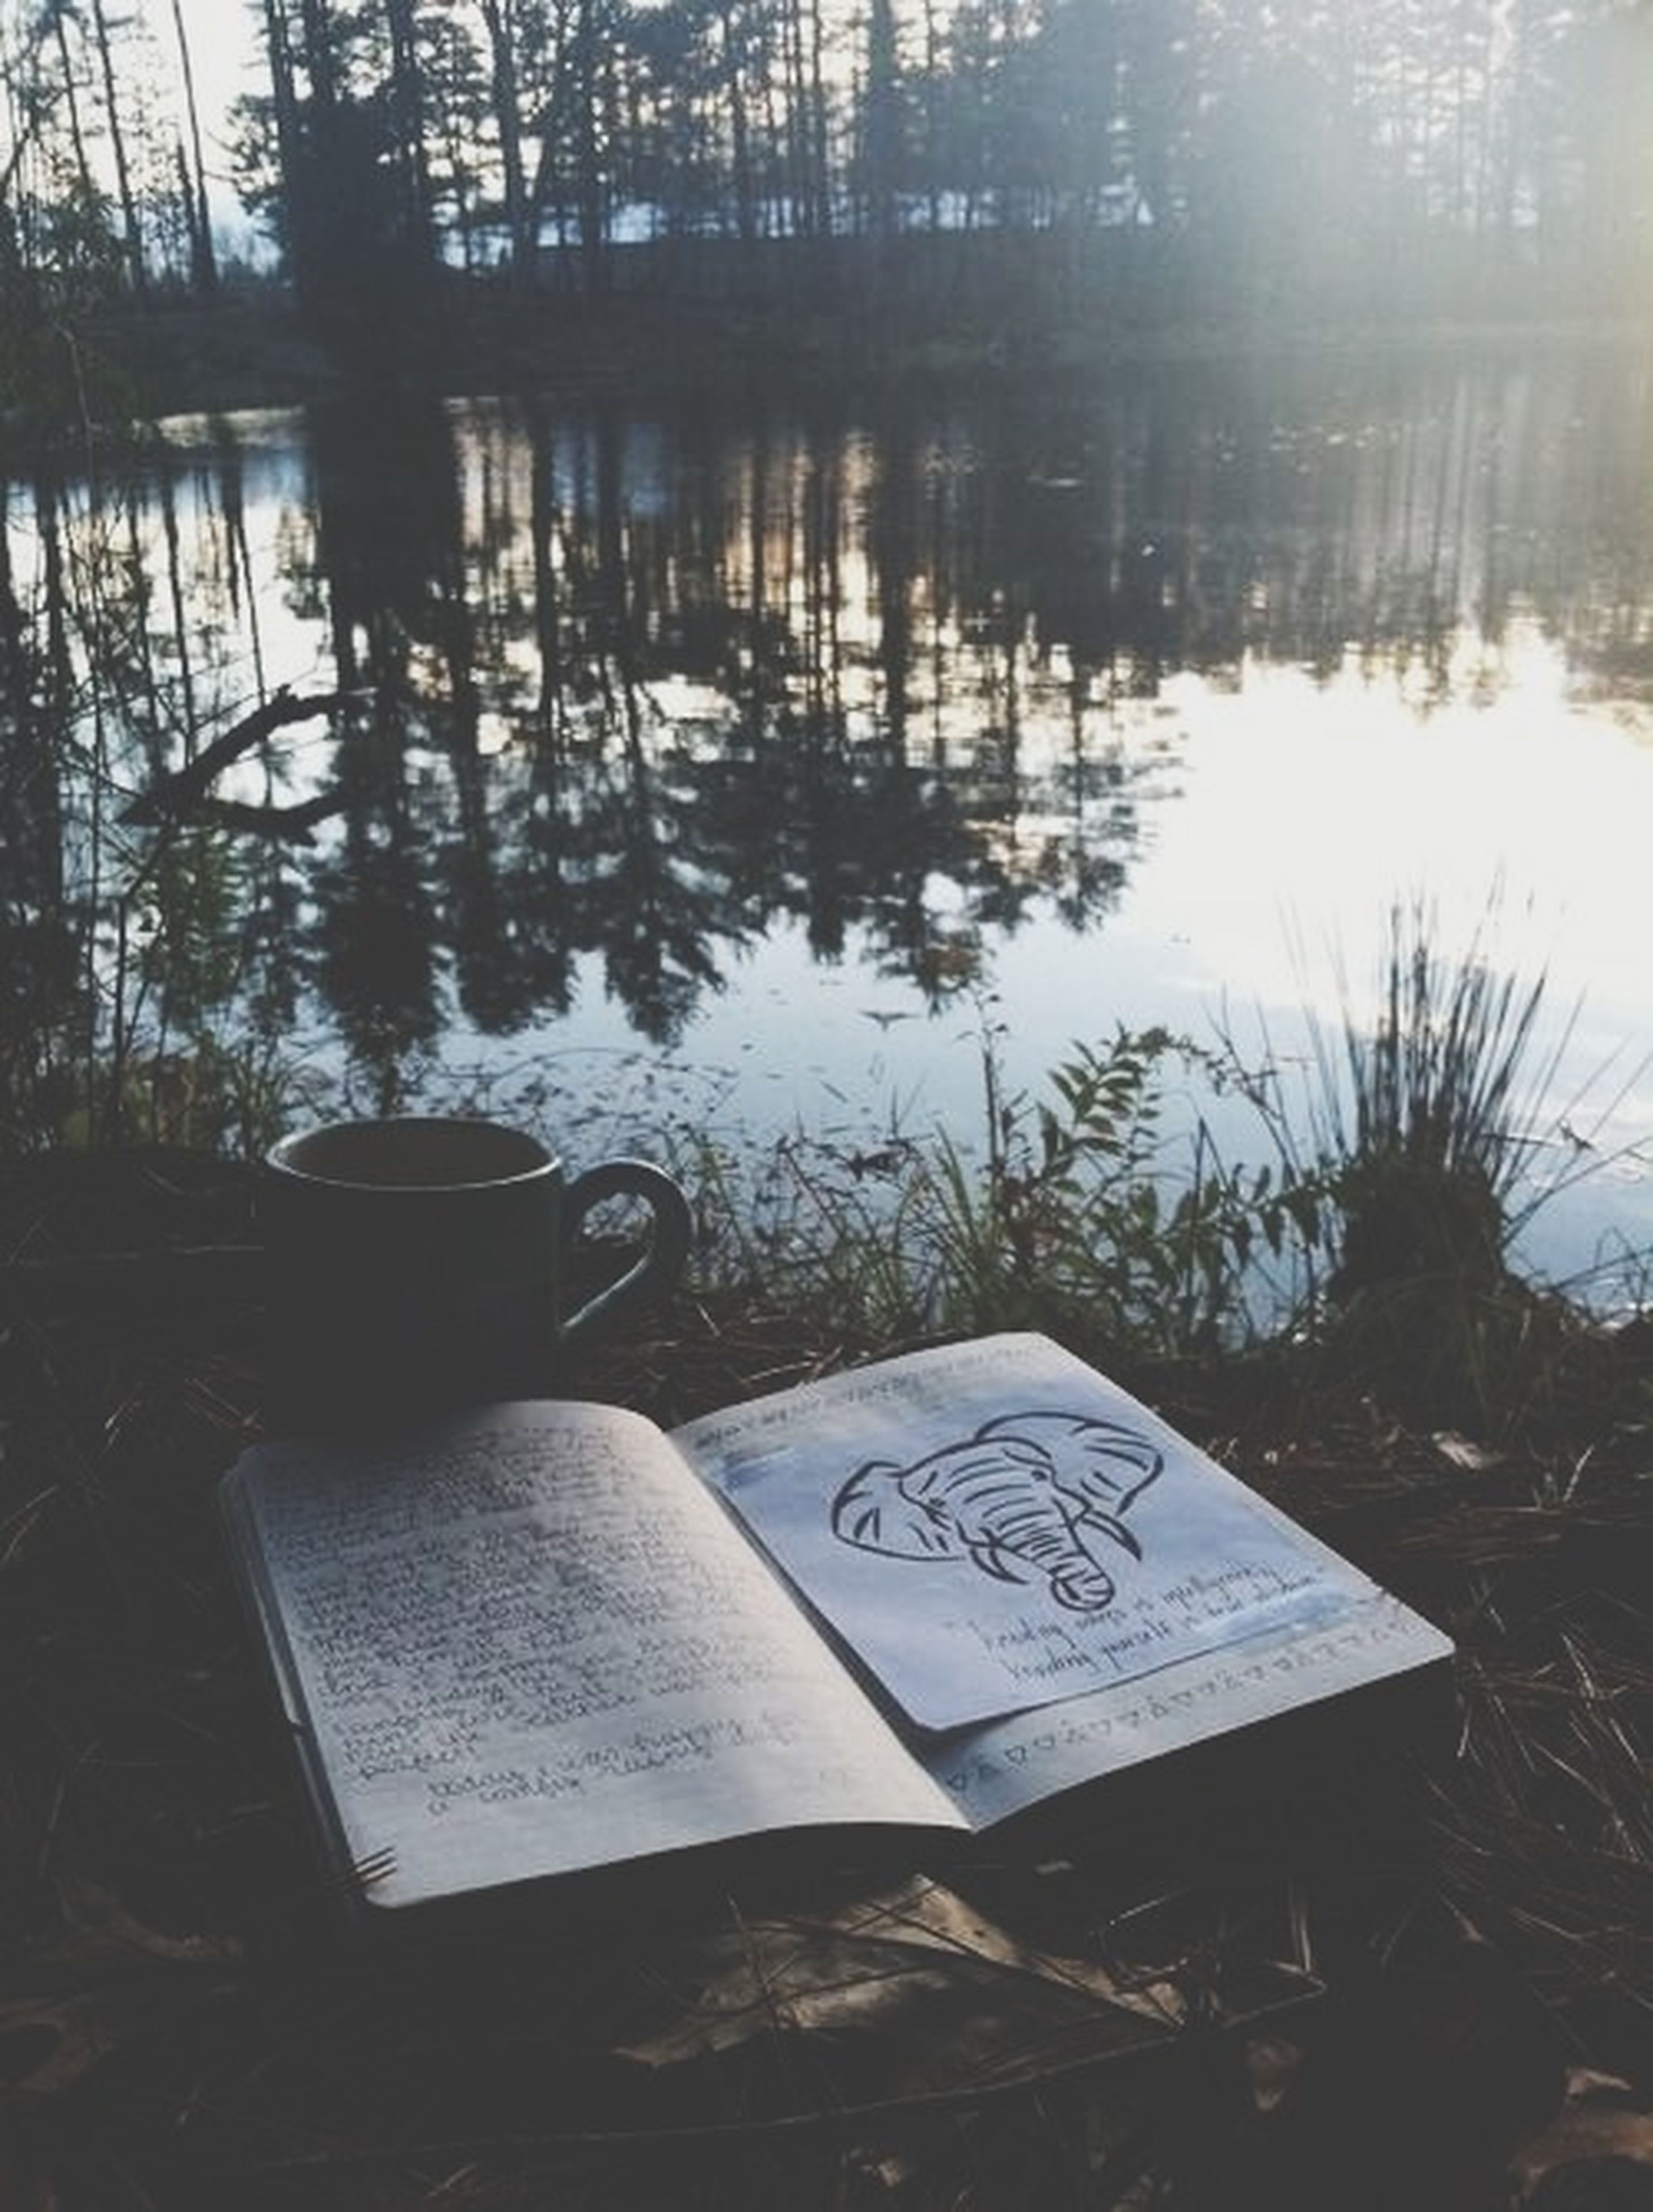 water, lake, tranquility, table, tree, tranquil scene, reflection, absence, nature, text, chair, sunlight, no people, day, lakeshore, empty, outdoors, western script, scenics, beauty in nature